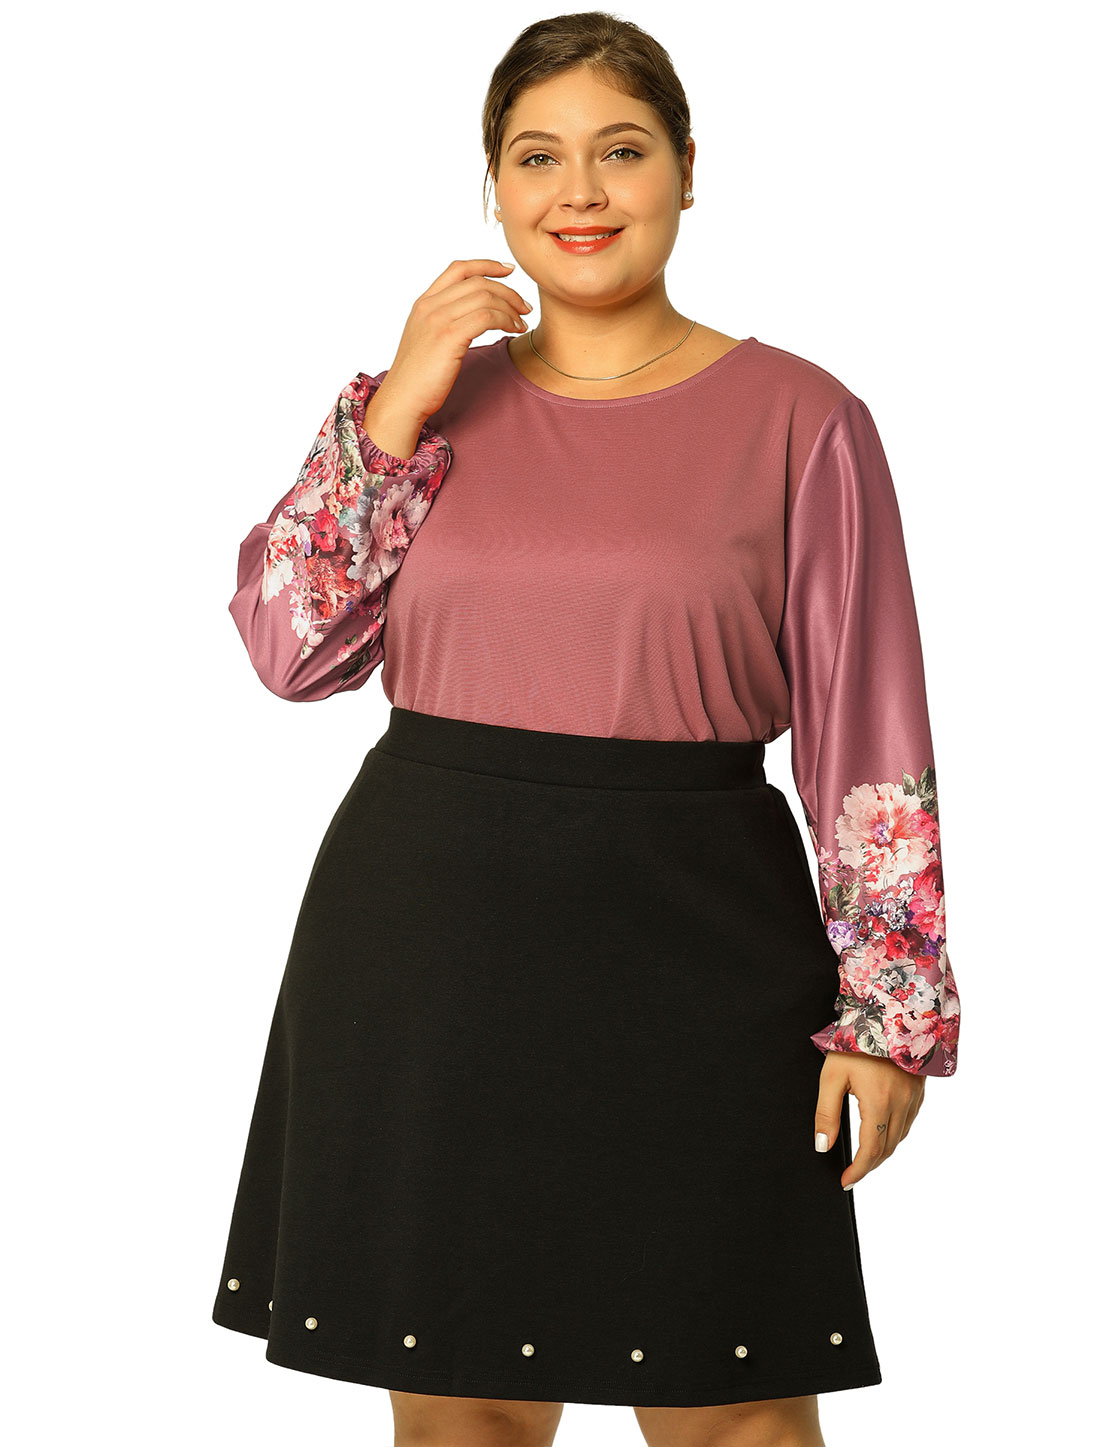 Womens Plus Size Floral Bishop Puff Sleeves Loose Casual Top Pink 1X